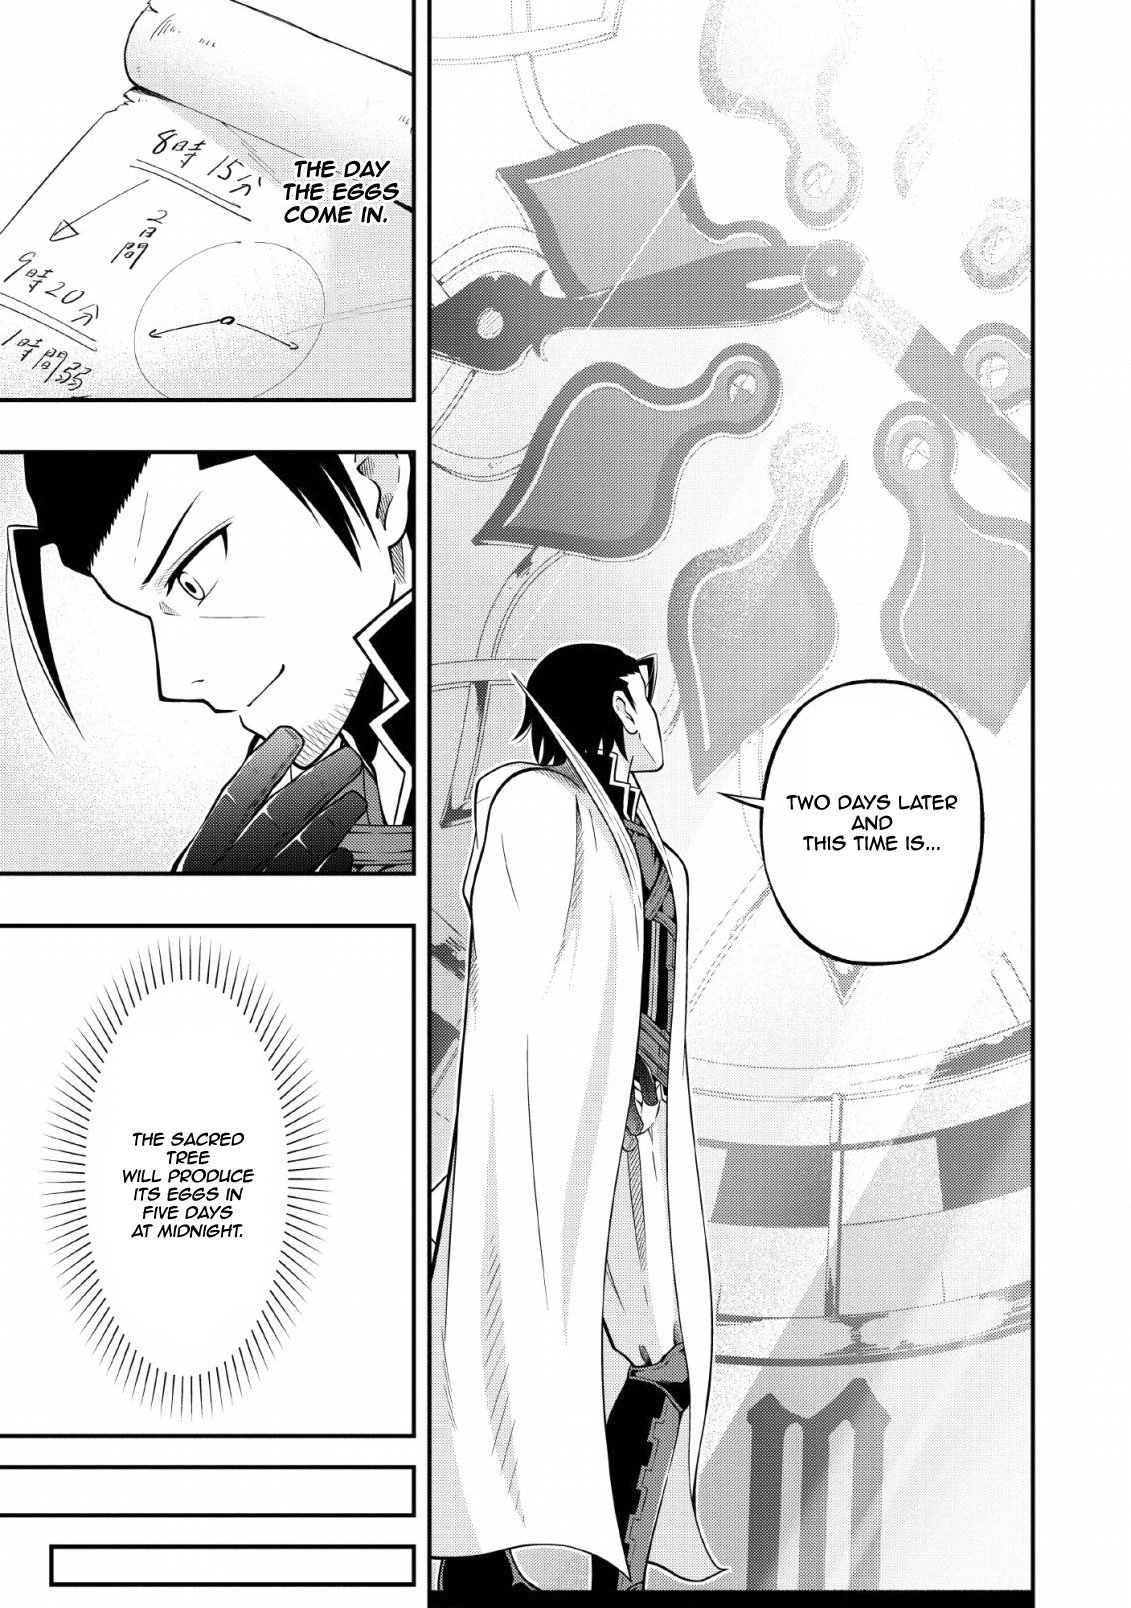 Manga The Old Man Who Got a Second Round in Another World - Chapter 9 Page 12